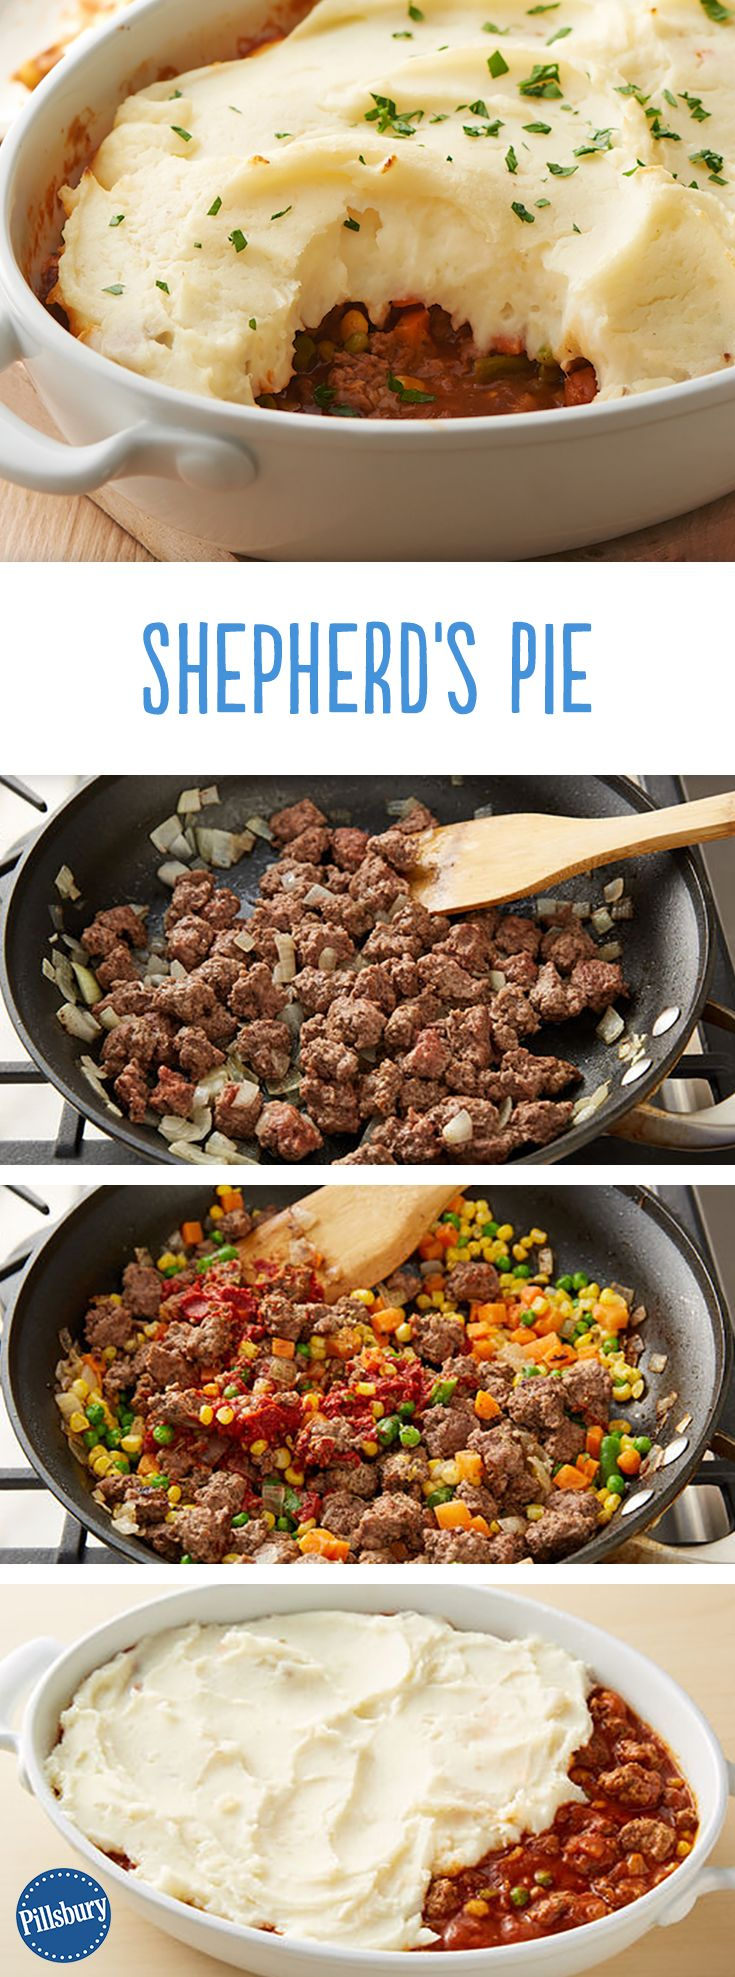 Wondering how to make a traditional shepherd's pie? Our version of this classic comfort food is made with garlic mashed potatoes